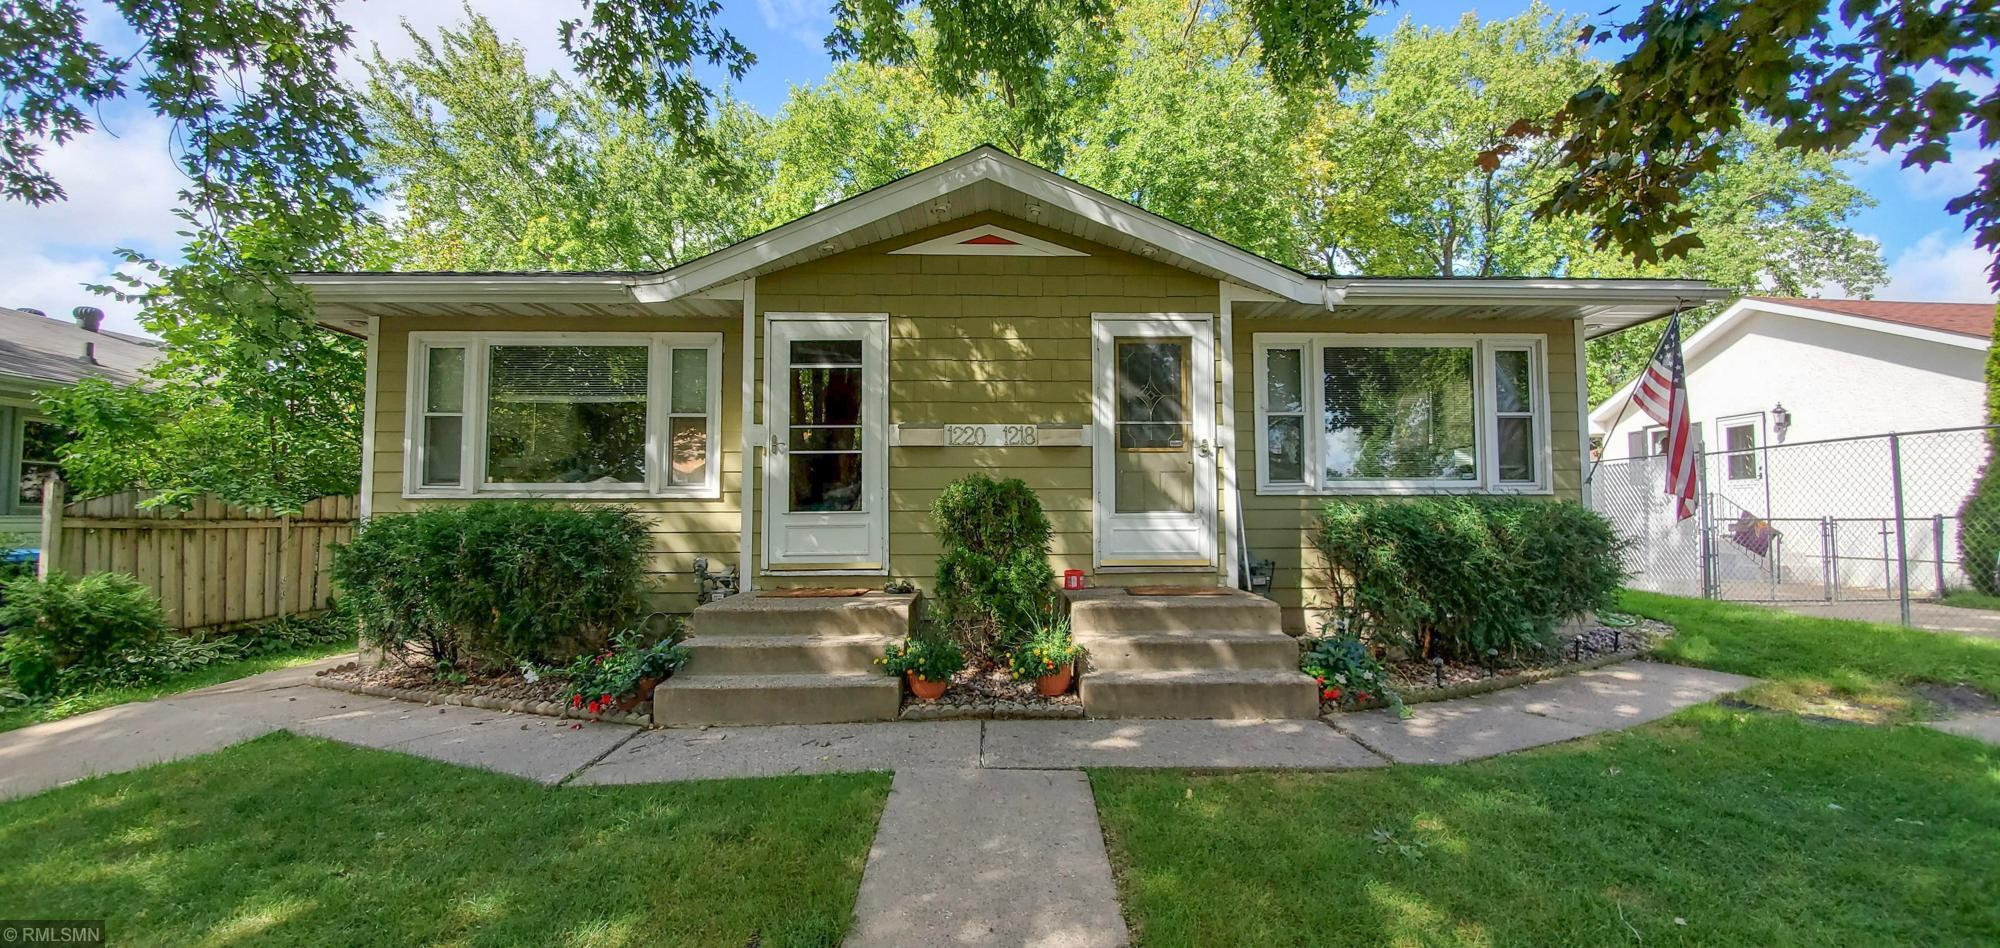 1218 8th Avenue S Property Photo - South Saint Paul, MN real estate listing